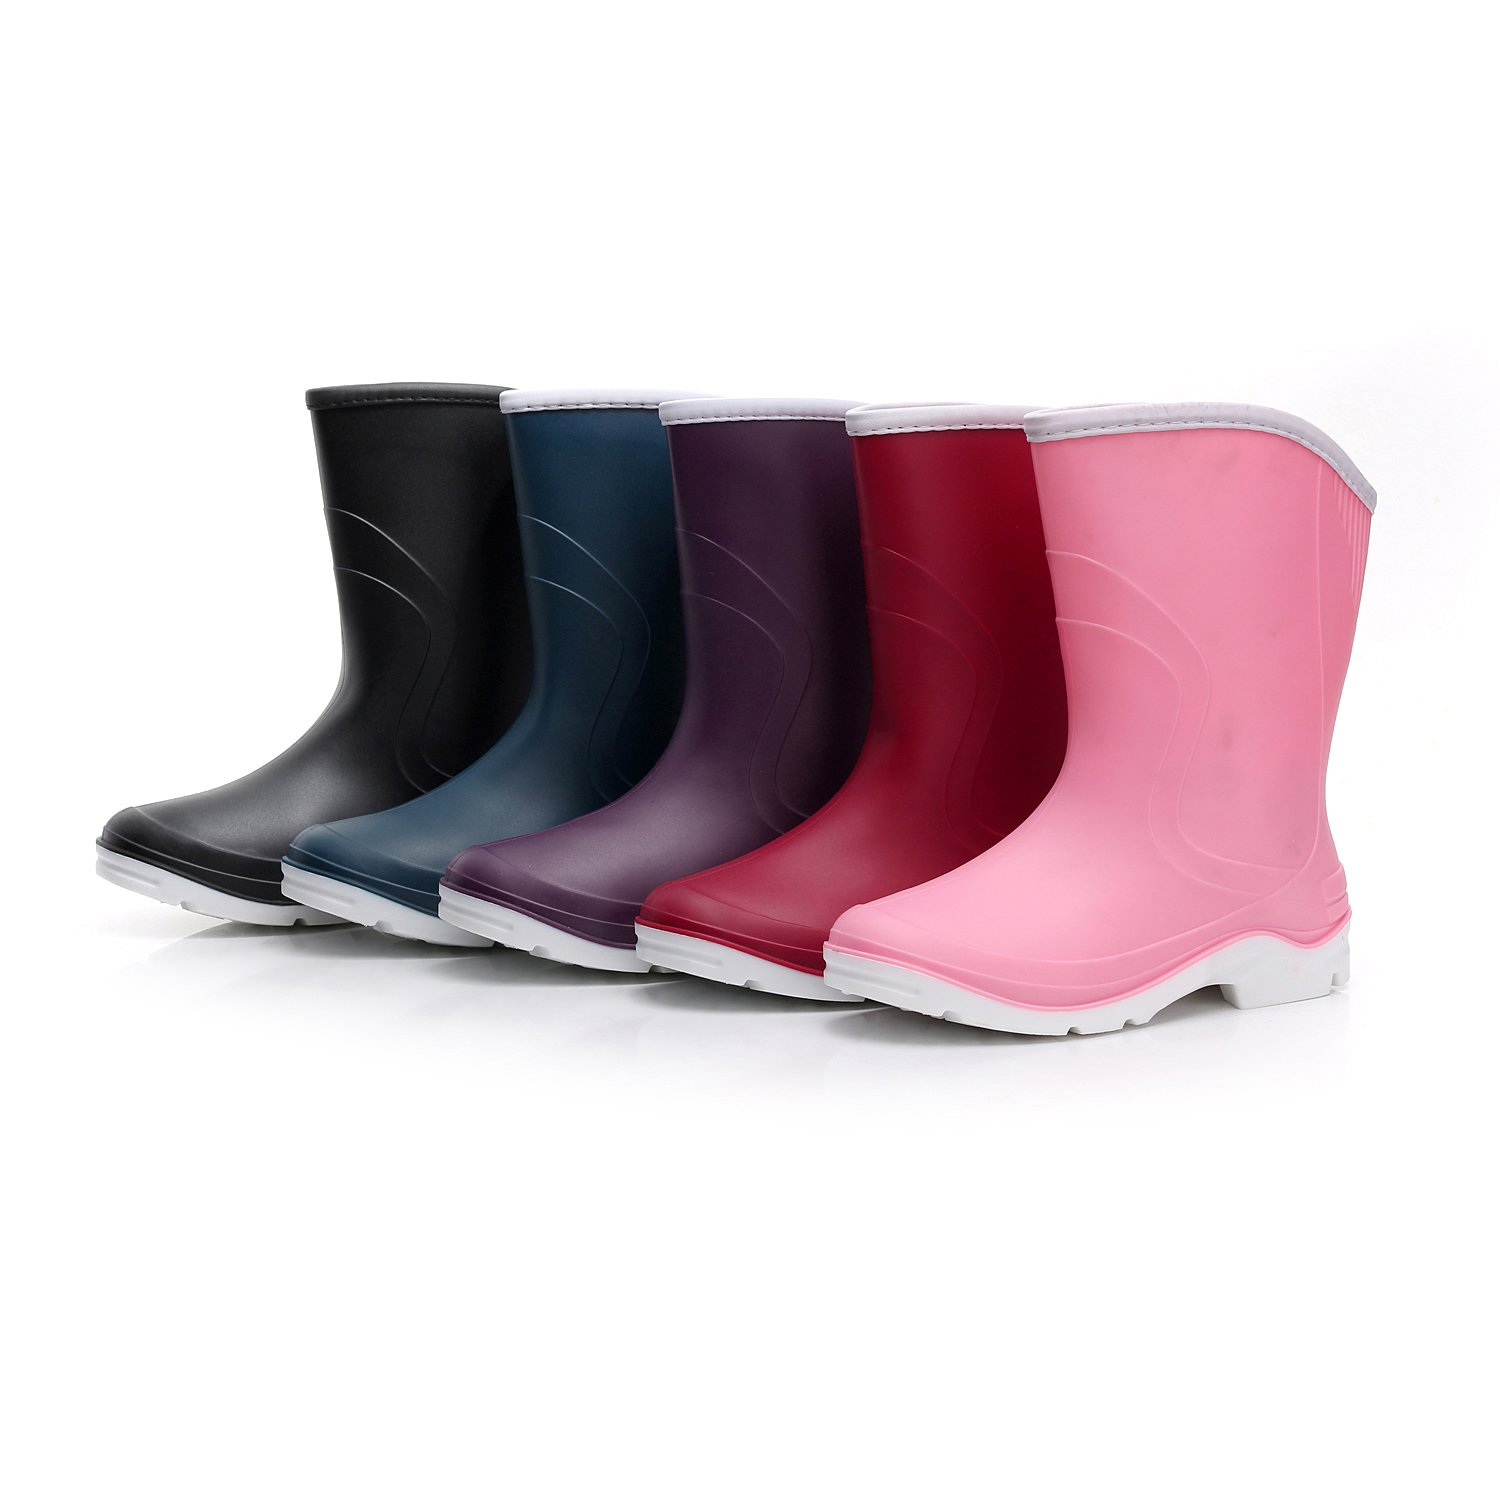 Kontai Women Half Calf Ankle Rubber Rainboots 2 Color Waterproof Boots for Garden Rain Round Toe Rainboots Size 7.5 by Kontai (Image #9)